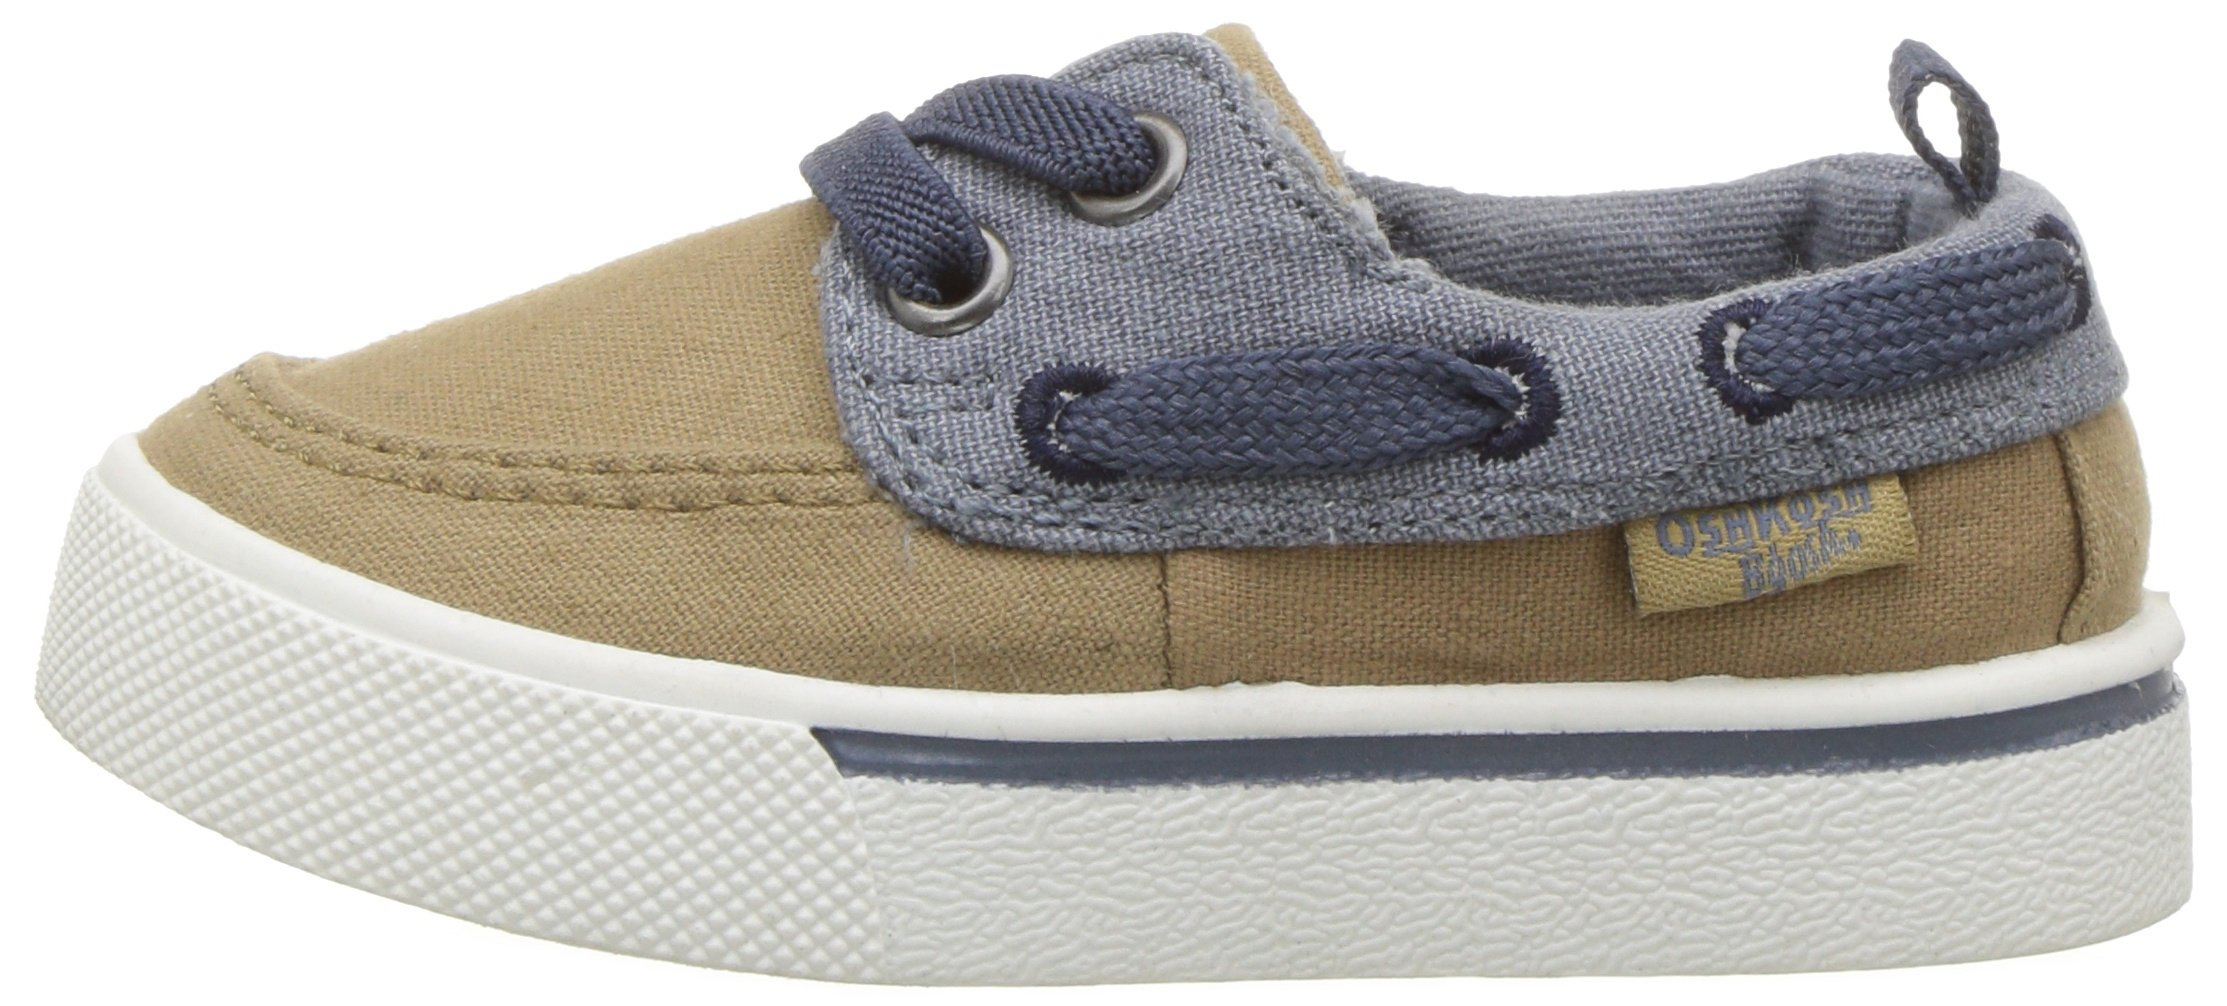 OshKosh B'Gosh Albie Boy's Boat Shoe, Khaki, 12 M US Little Kid by OshKosh B'Gosh (Image #5)